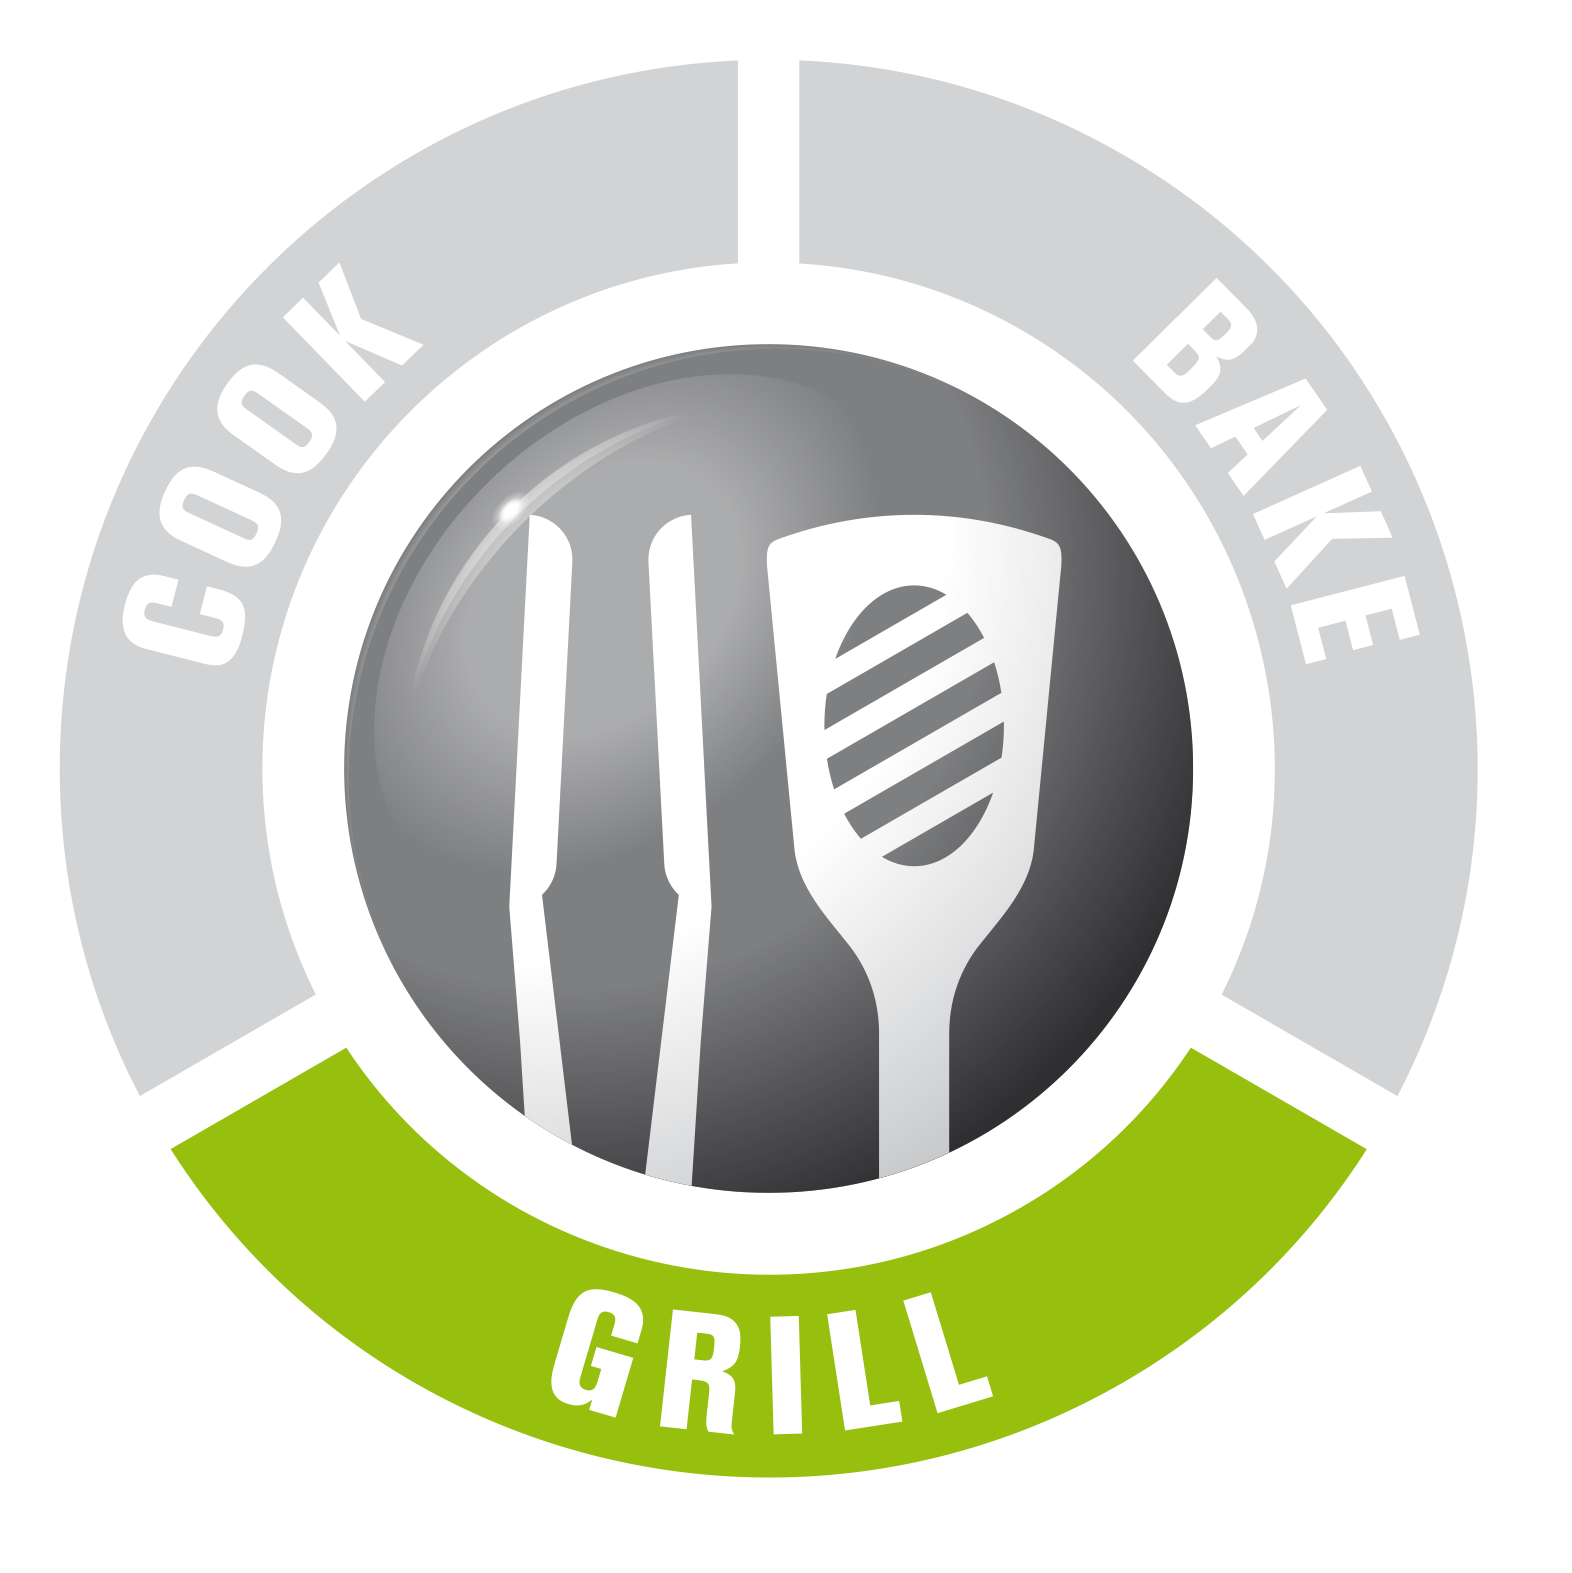 Grill - Outdoorchef